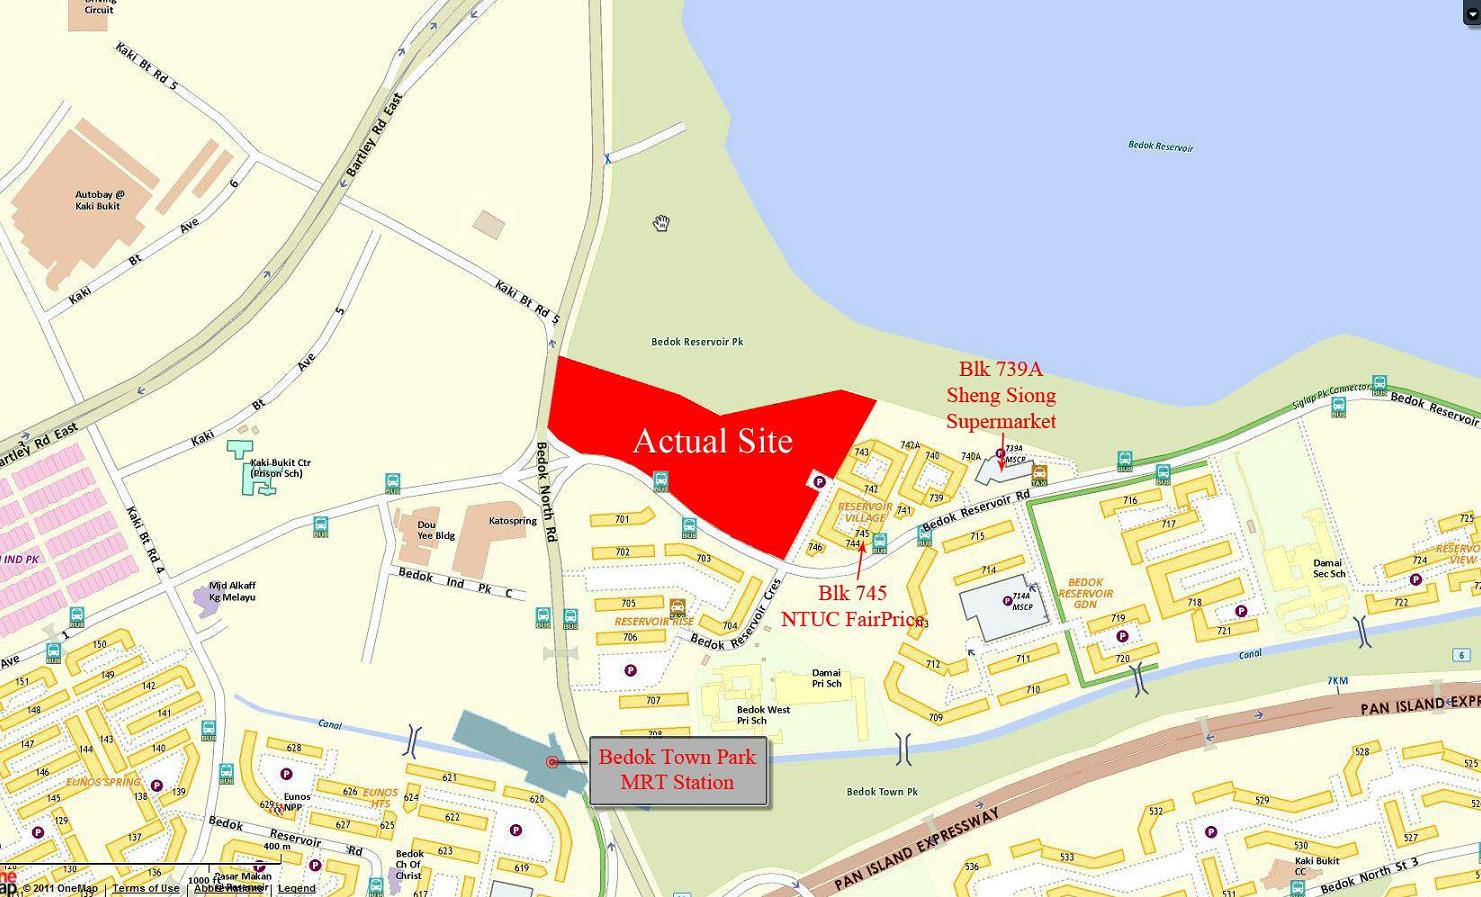 New Bedok Reservoir Condo Location